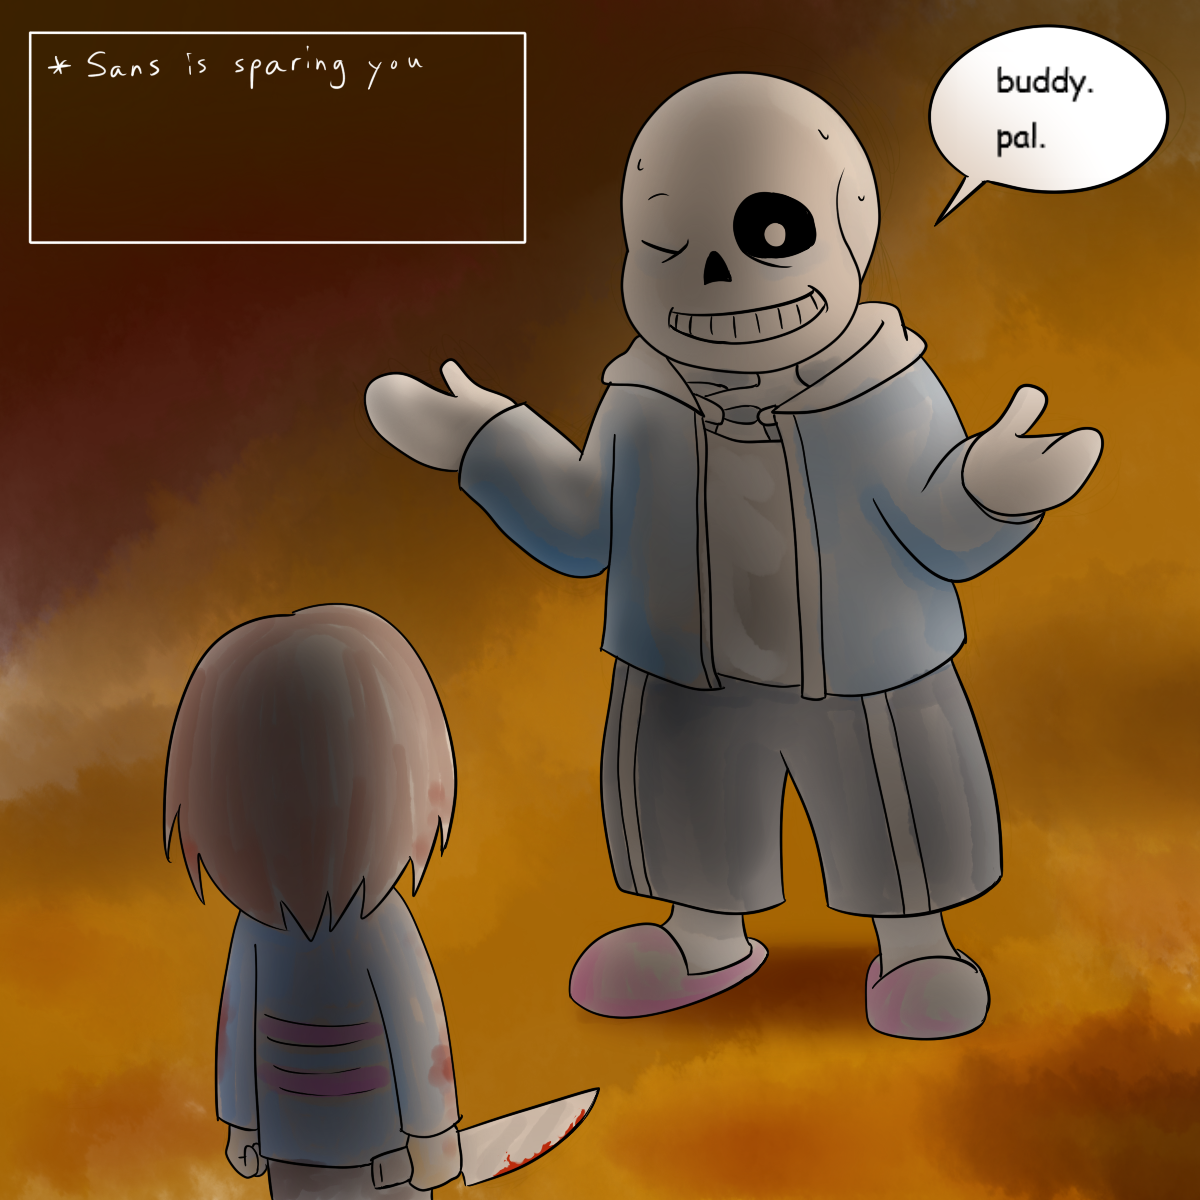 Sans is Sparing You by lemurcat on DeviantArt